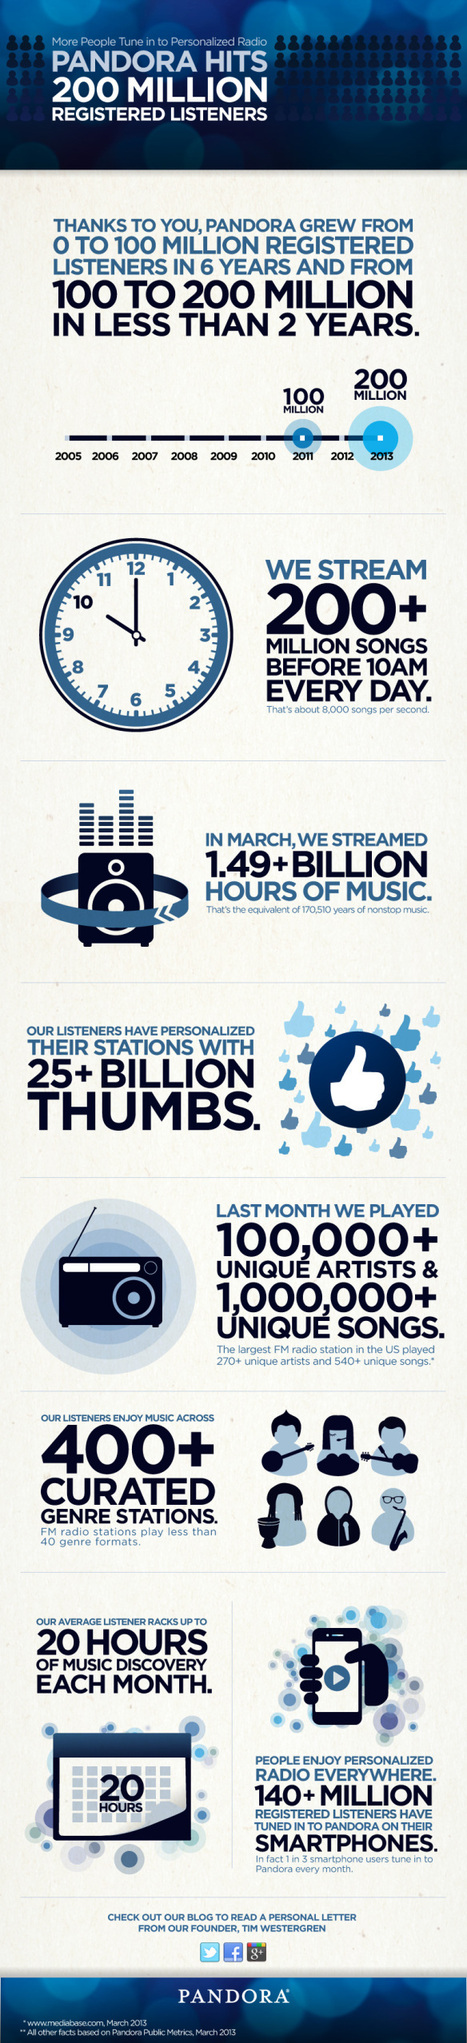 Pandora hits 200 million registered listeners milestone | Pandora Kills | Scoop.it